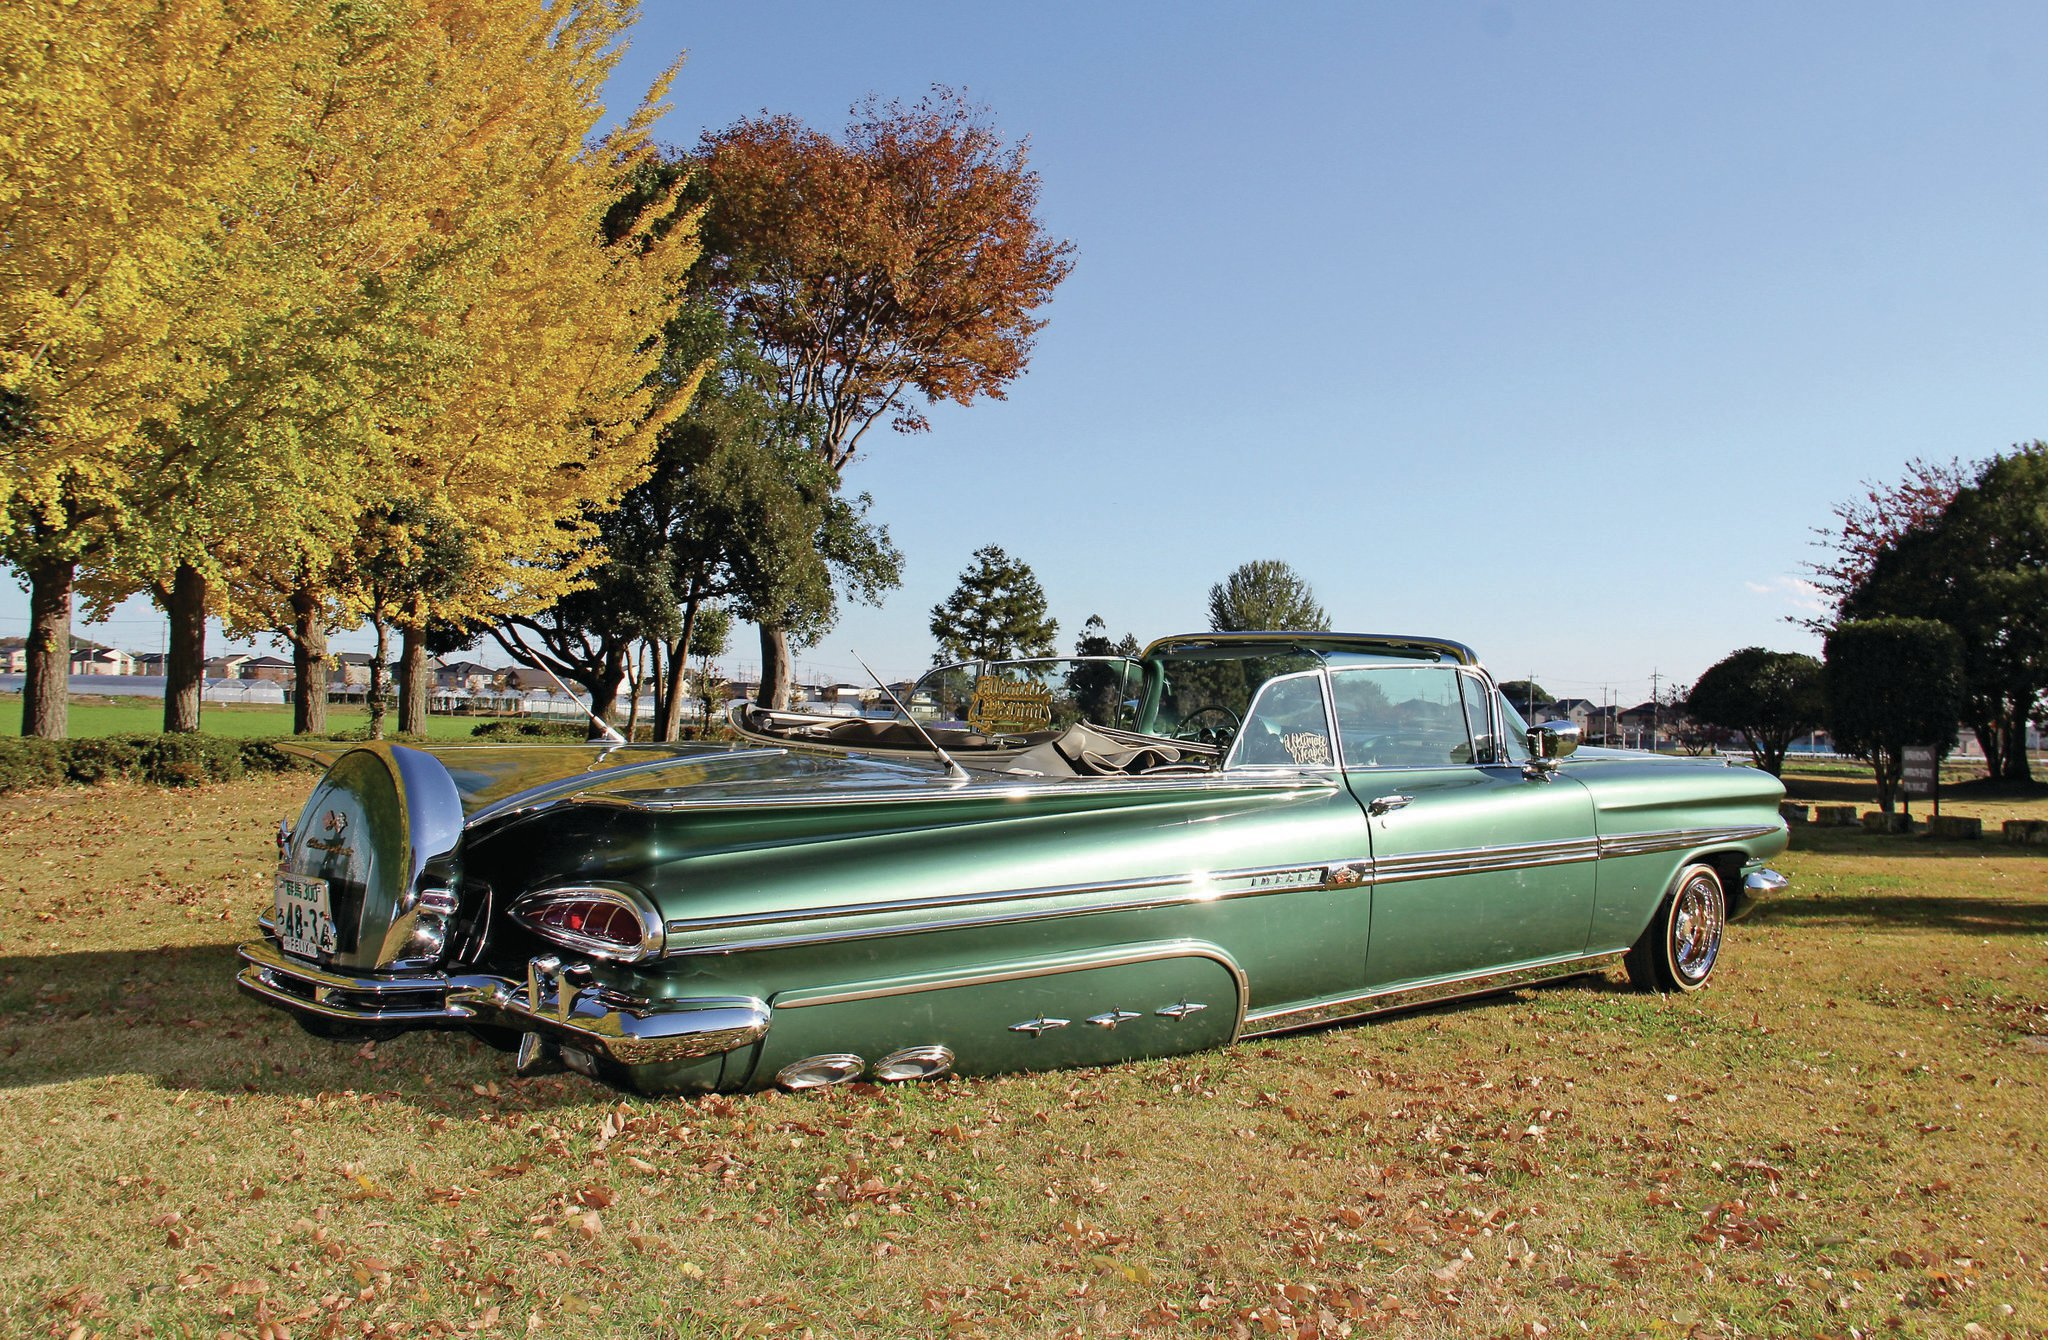 1959 Chevrolet Impala - The Color Of Money